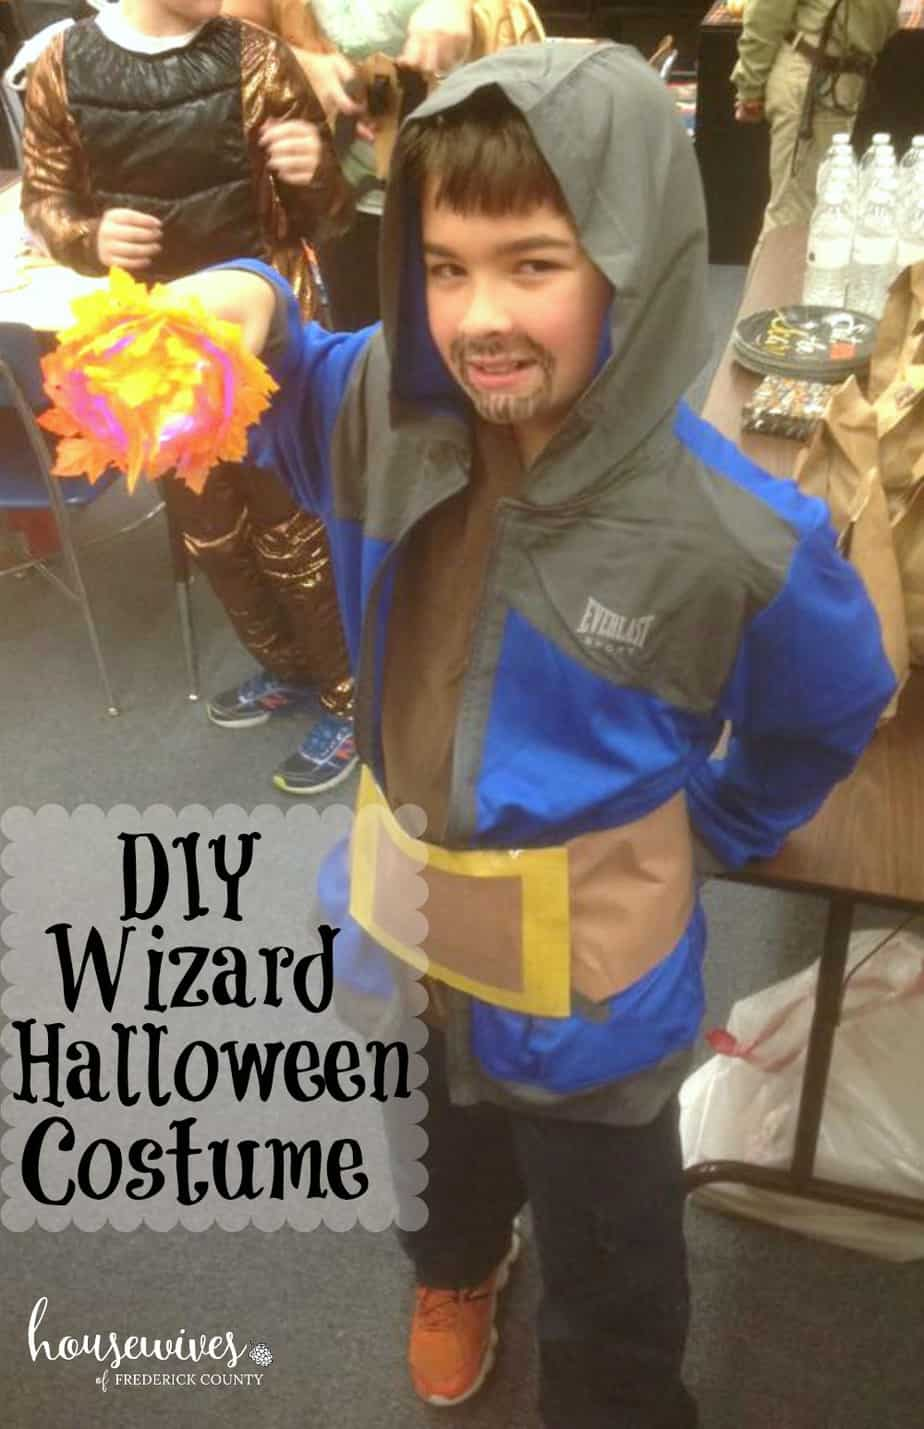 DIY Wizard Halloween Costume